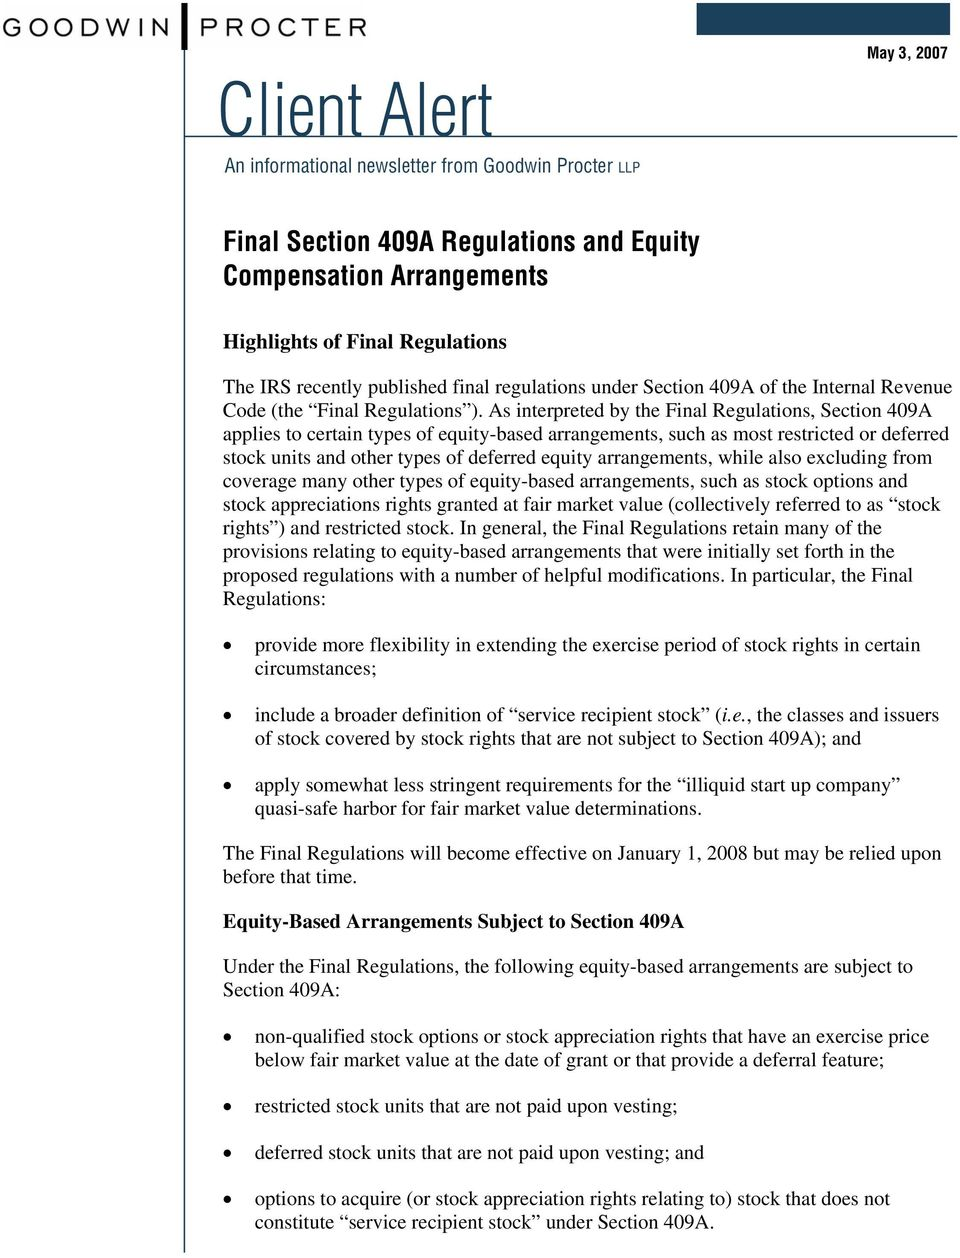 As interpreted by the Final Regulations, Section 409A applies to certain types of equity-based arrangements, such as most restricted or deferred stock units and other types of deferred equity